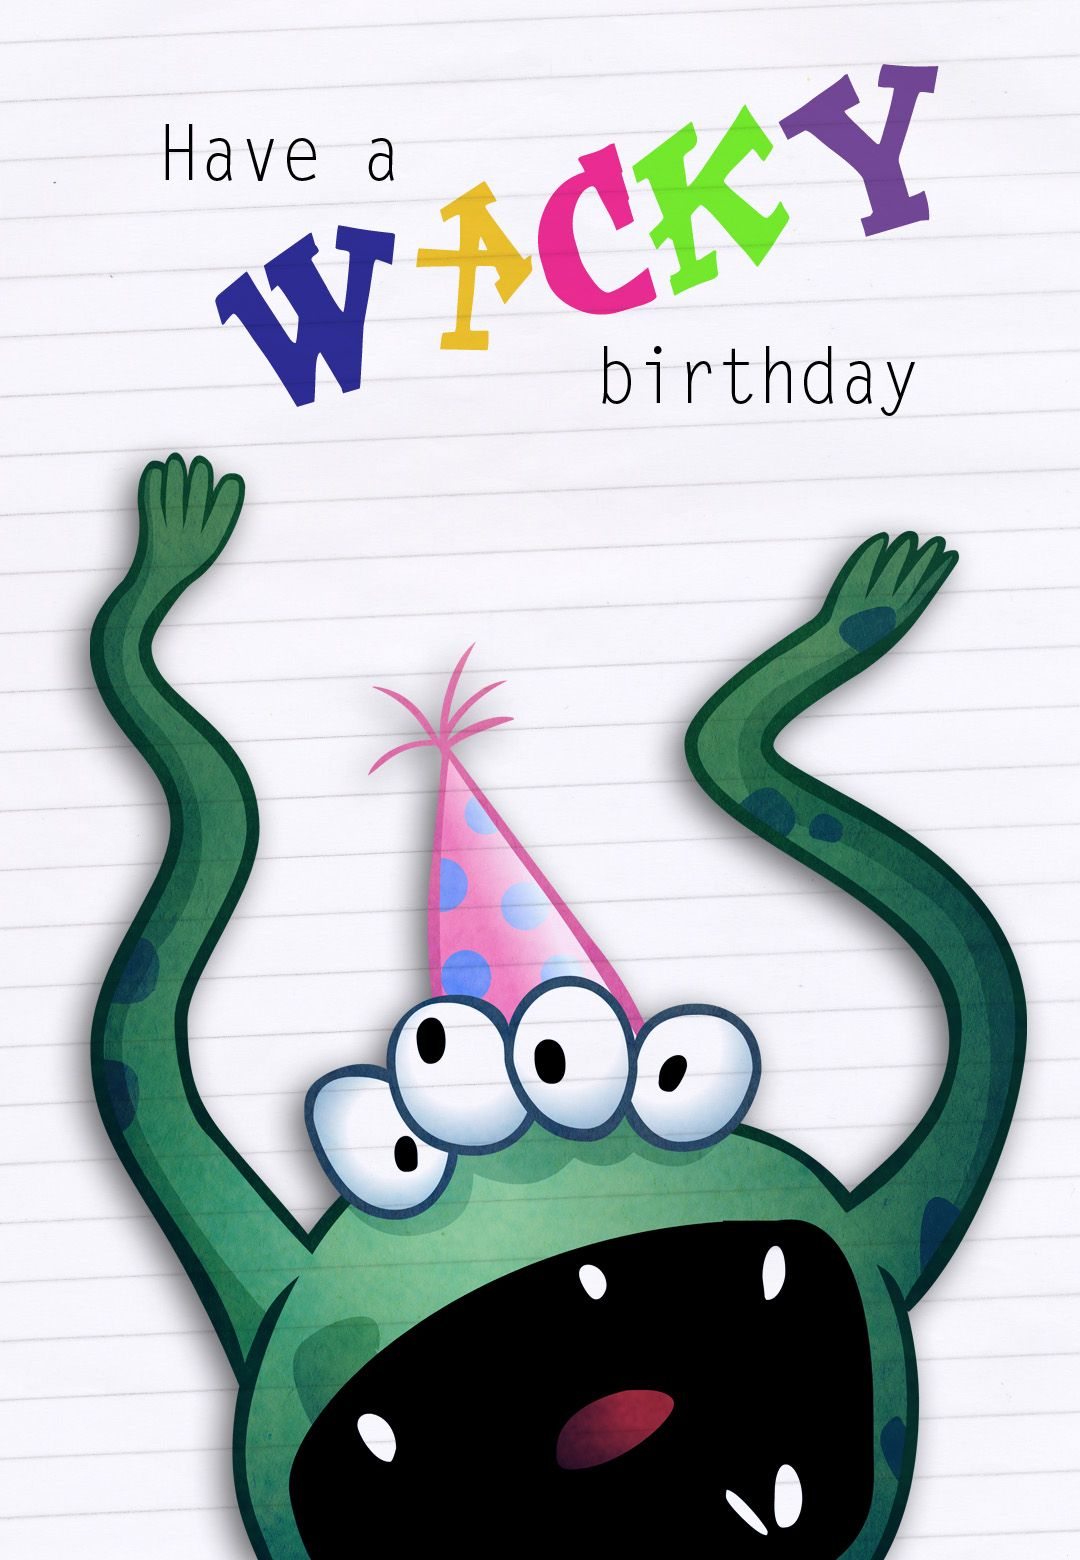 Free Printable Greeting Cards - The Kids Love To Make Cards With - Free Printable Kids Birthday Cards Boys